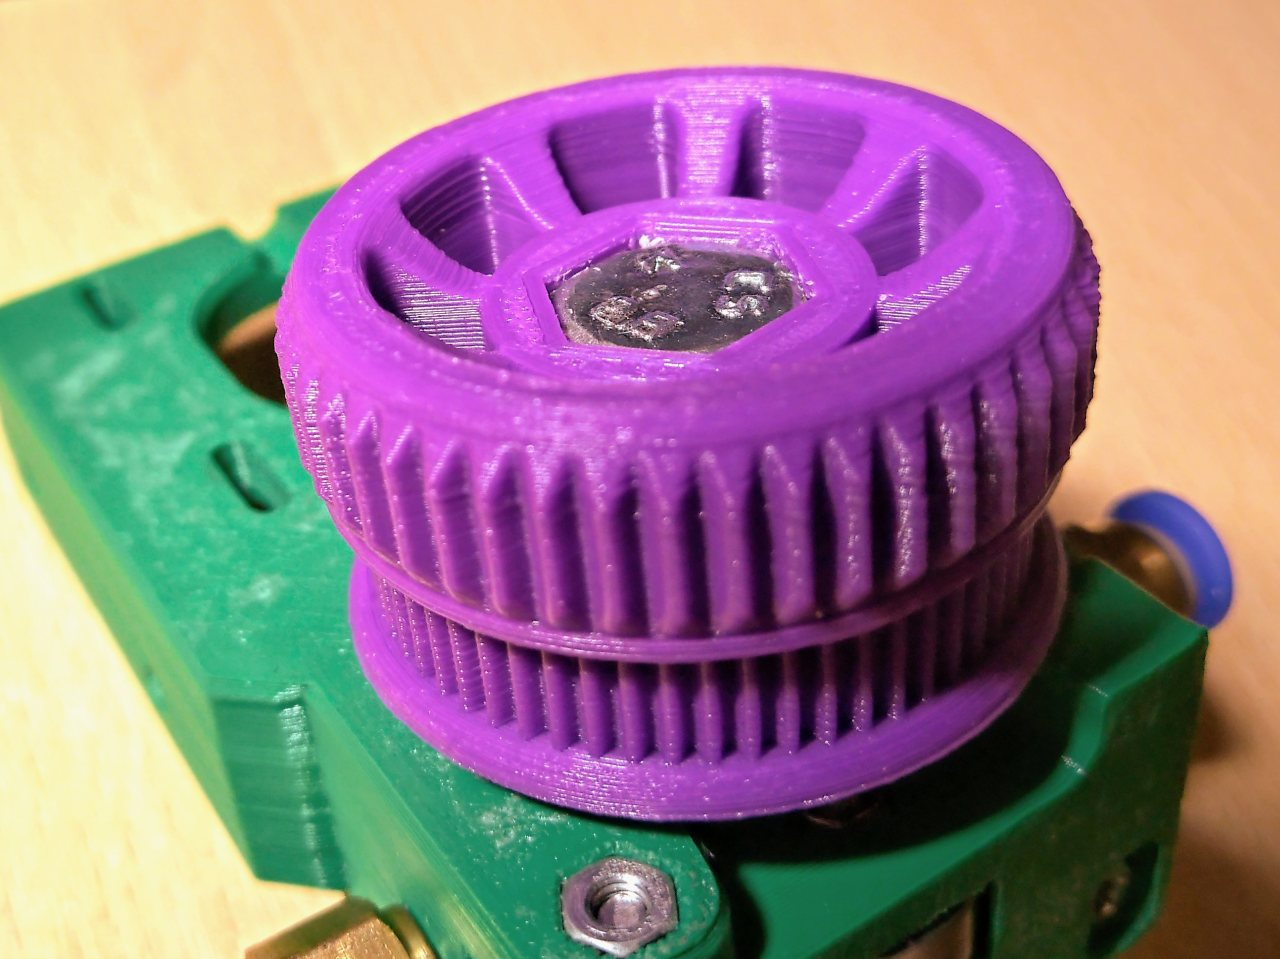 Belted Extruder v4 printed Gear GT2 60 Teeth with Knob